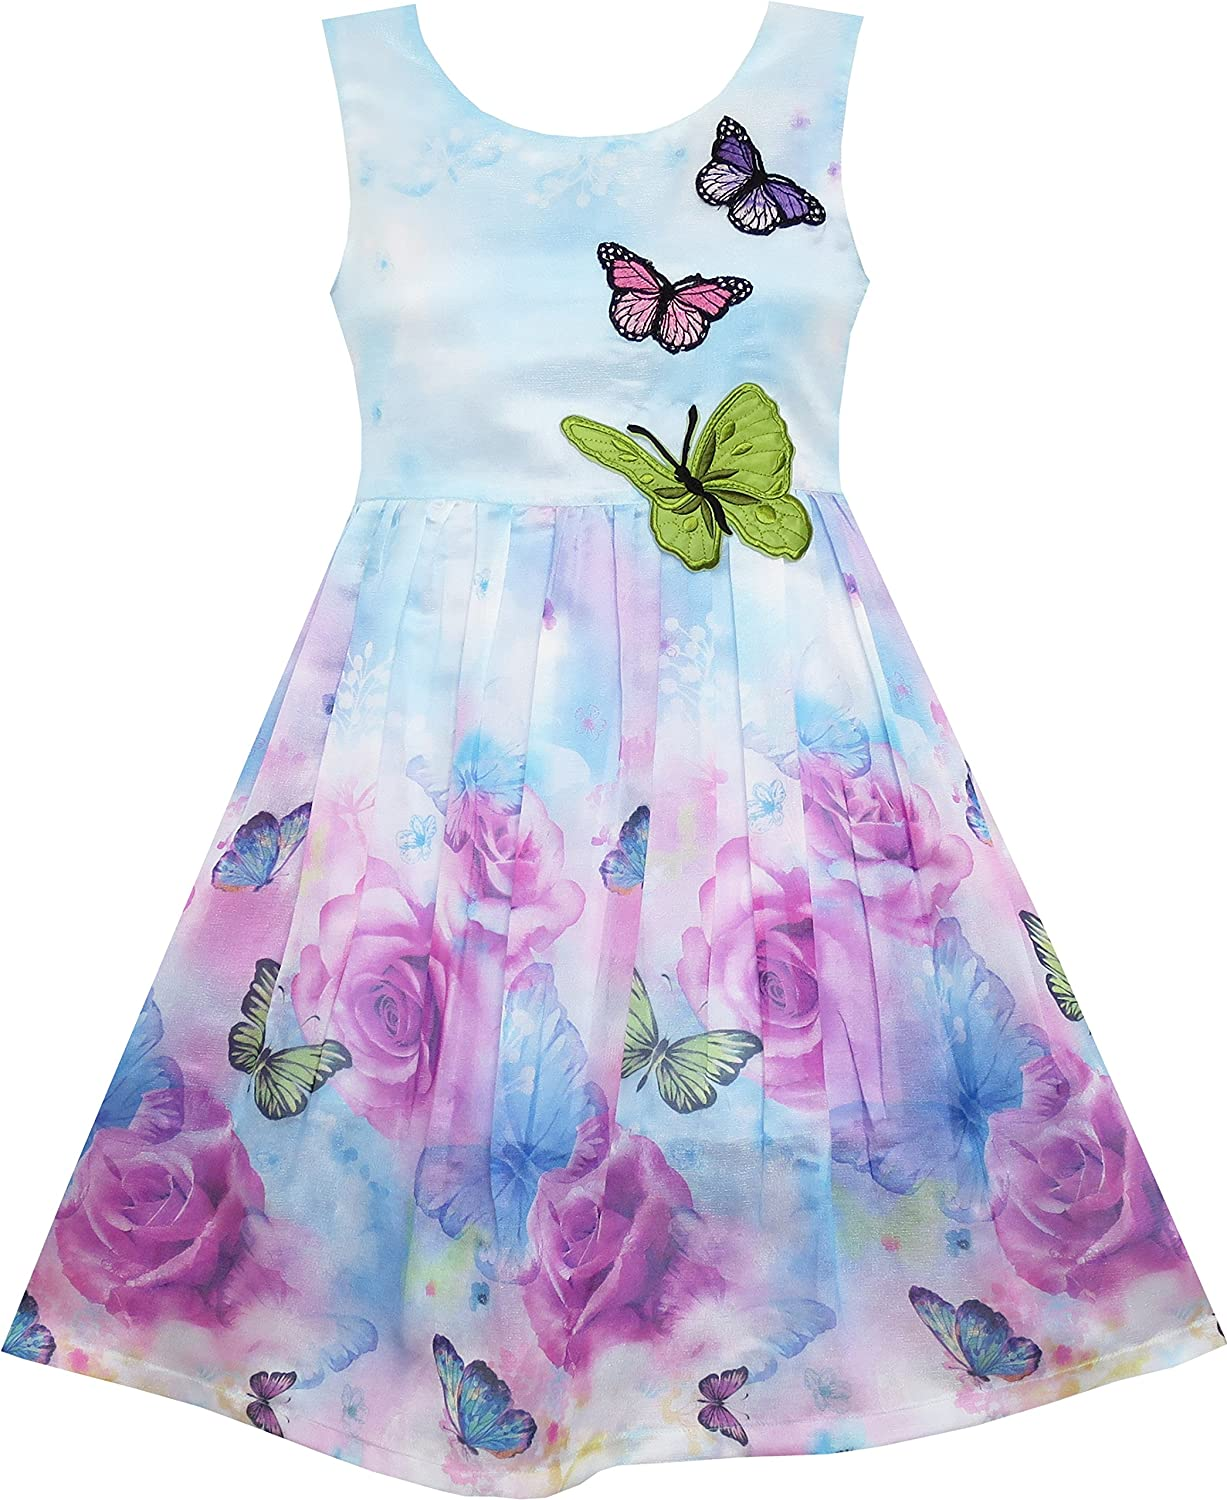 Sunny Fashion Girls Dress Rose Flower Print Butterfly Embroidery Purple 4-12 Years